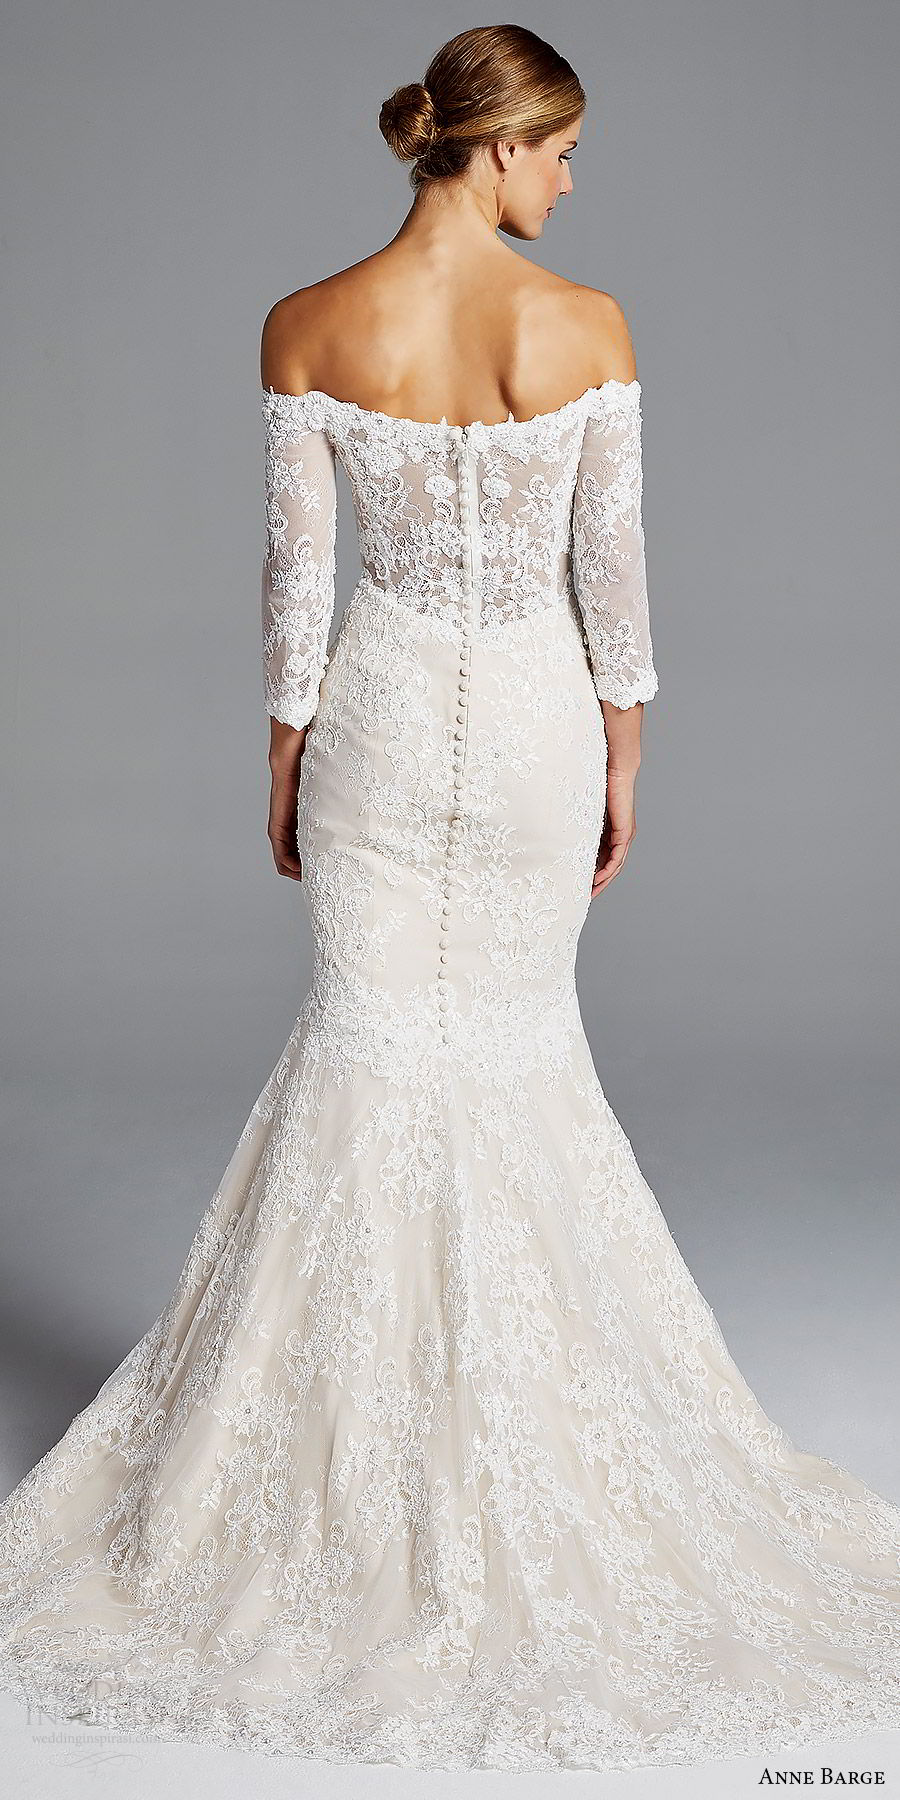 anne barge bridal spring 2019 3 quarter sleeves off shoulder illusion sweetheart lace mermaid wedding dress (loren) bv scoop back chapel train elegant romantic